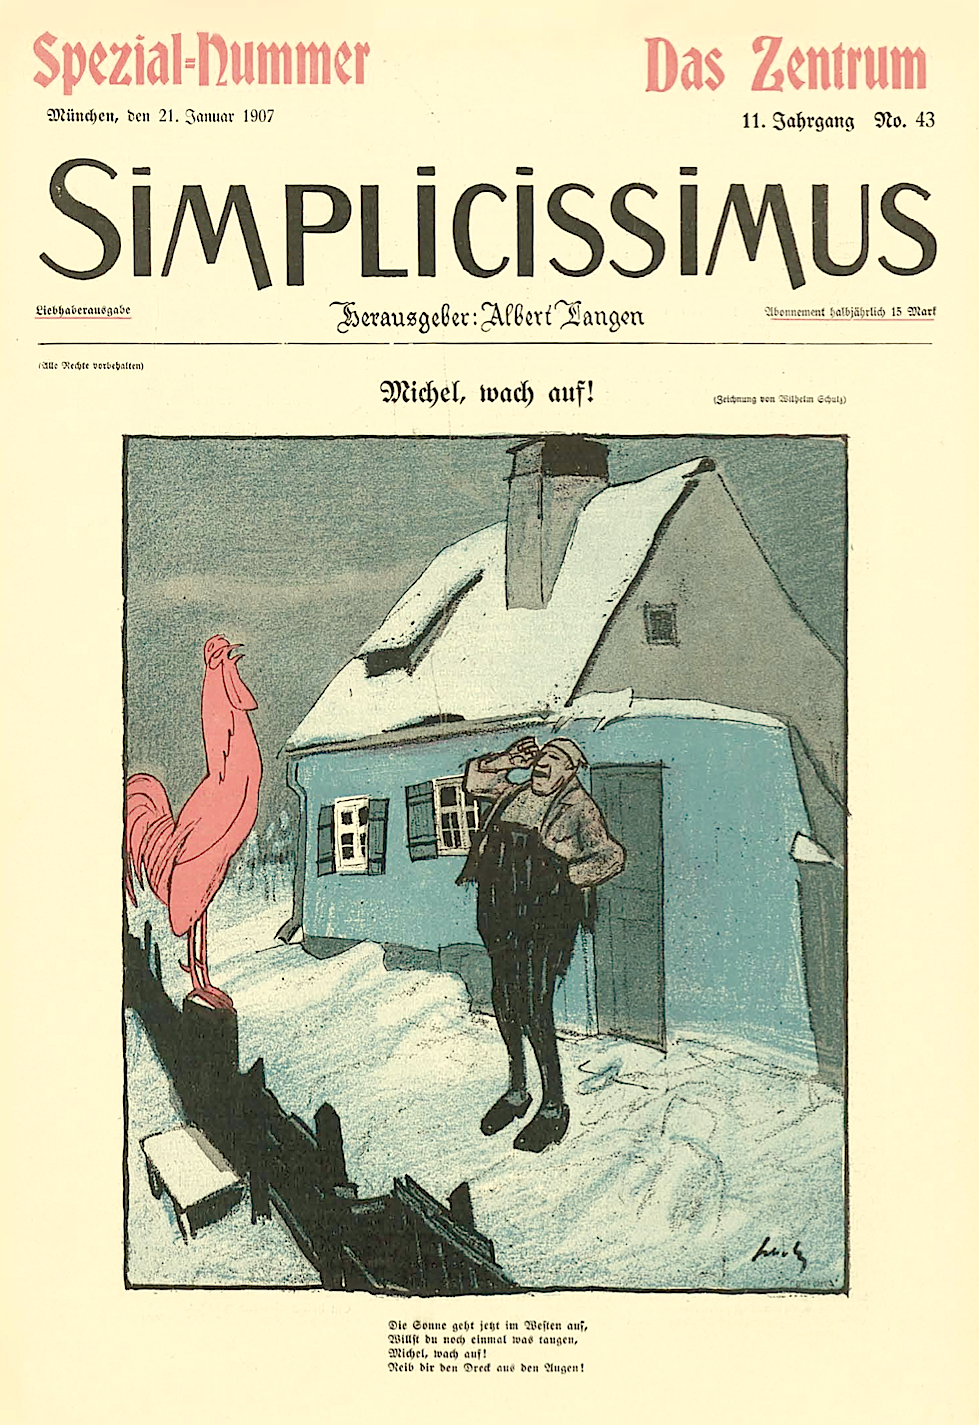 [1907, Jan 21] Michel, wake up! (Michel, wach auf!), Wilhelm Schulz cover of Simplicissimus 43, Vol. 11, p.685